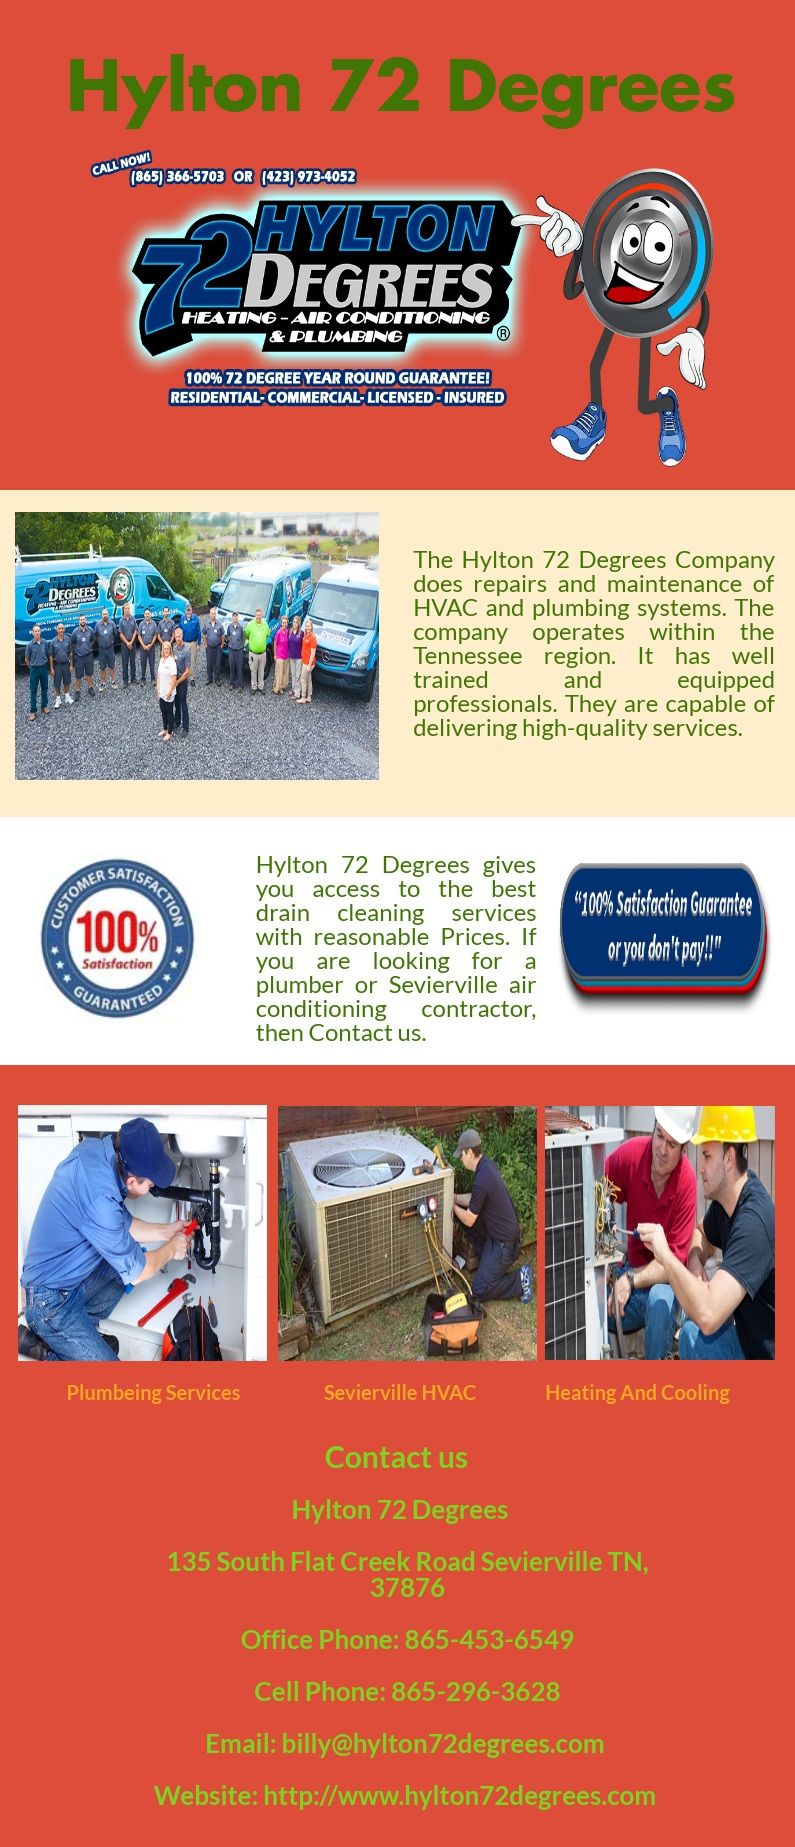 The Hylton 72 Degrees Company does repairs and maintenance